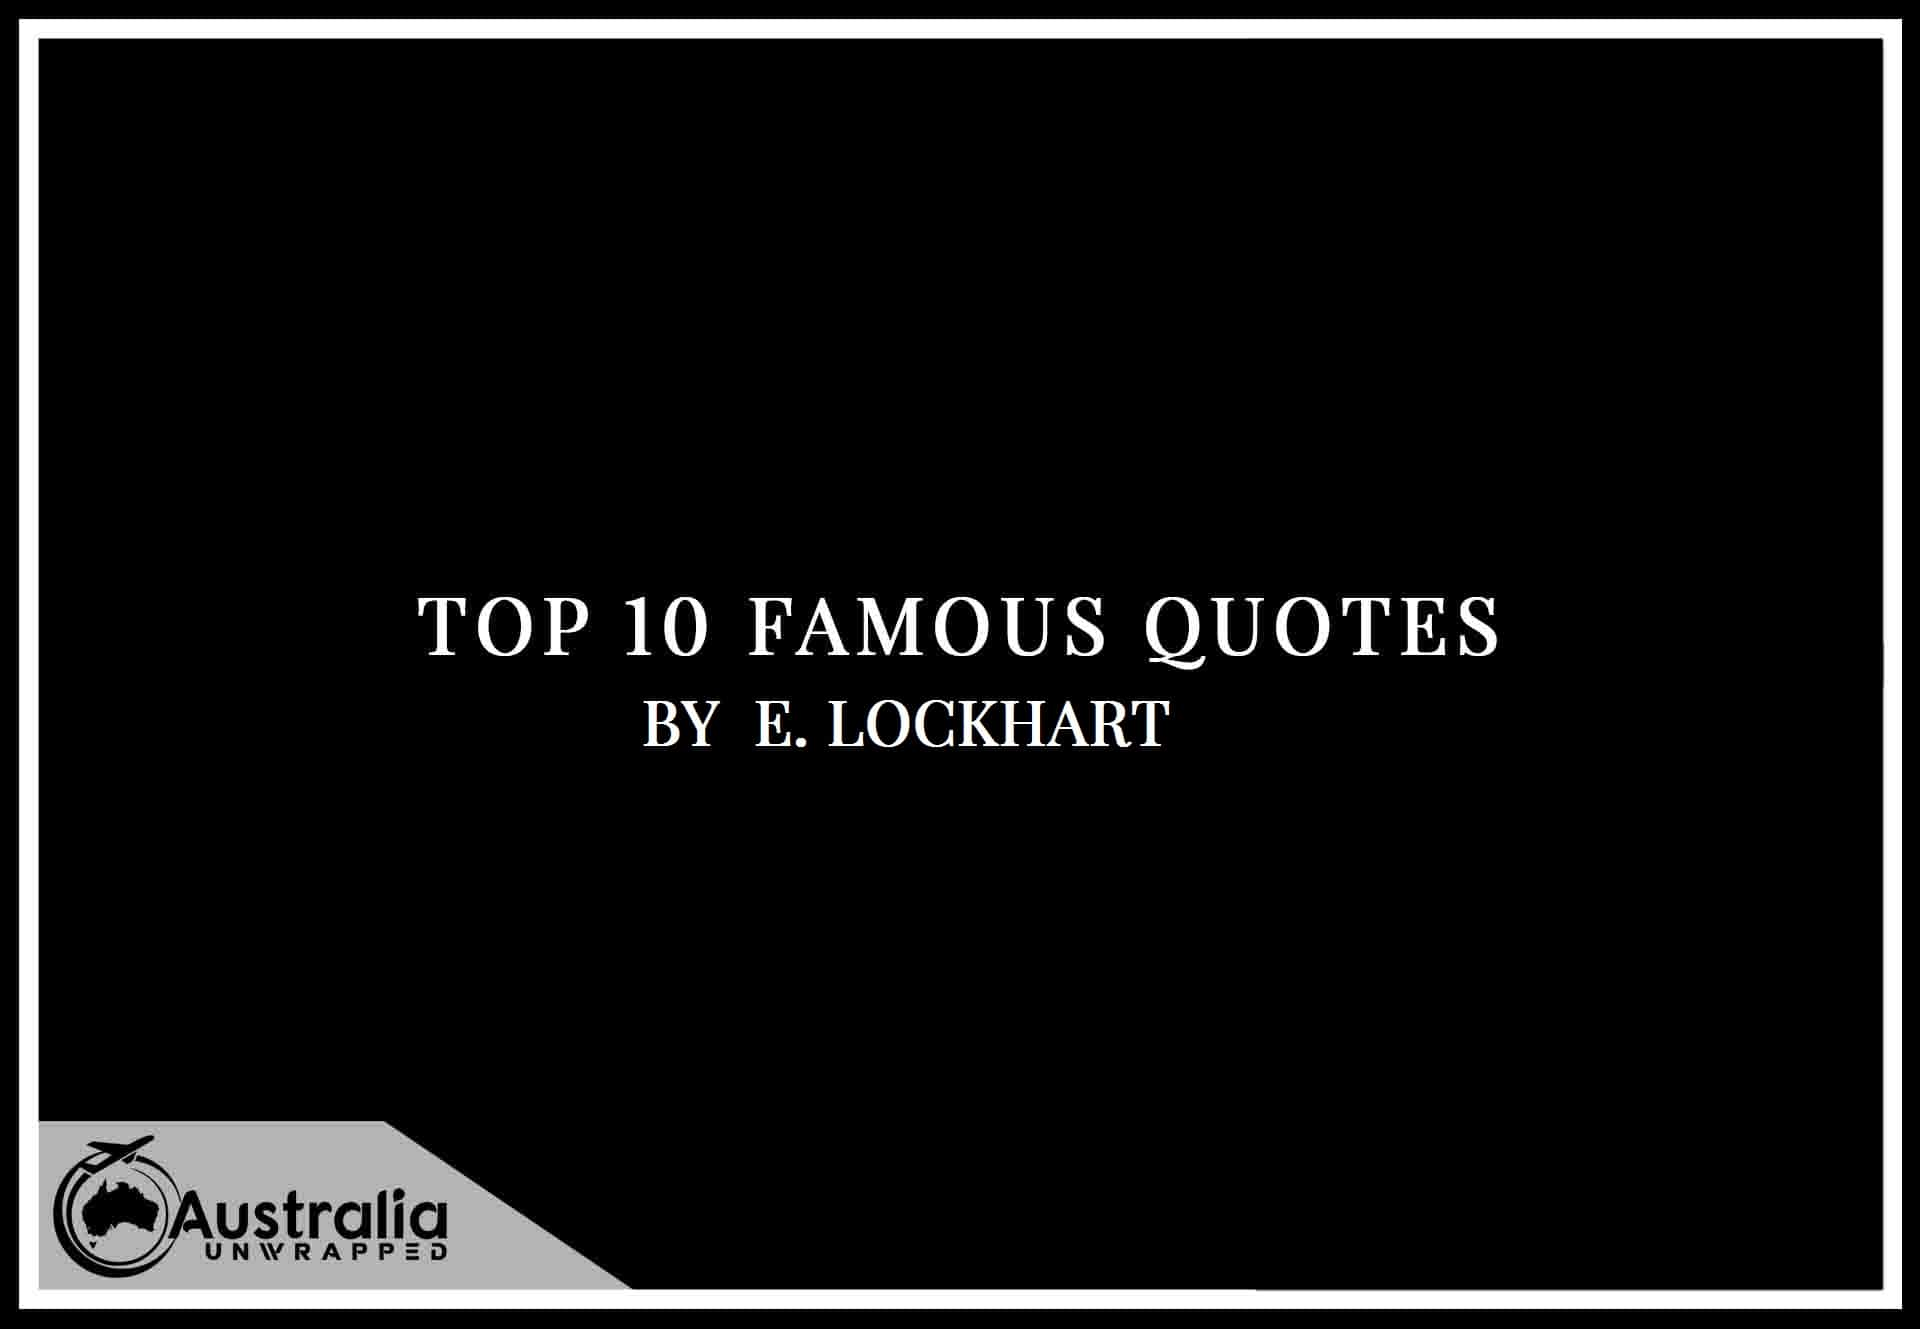 E. Lockhart's Top 10 Popular and Famous Quotes